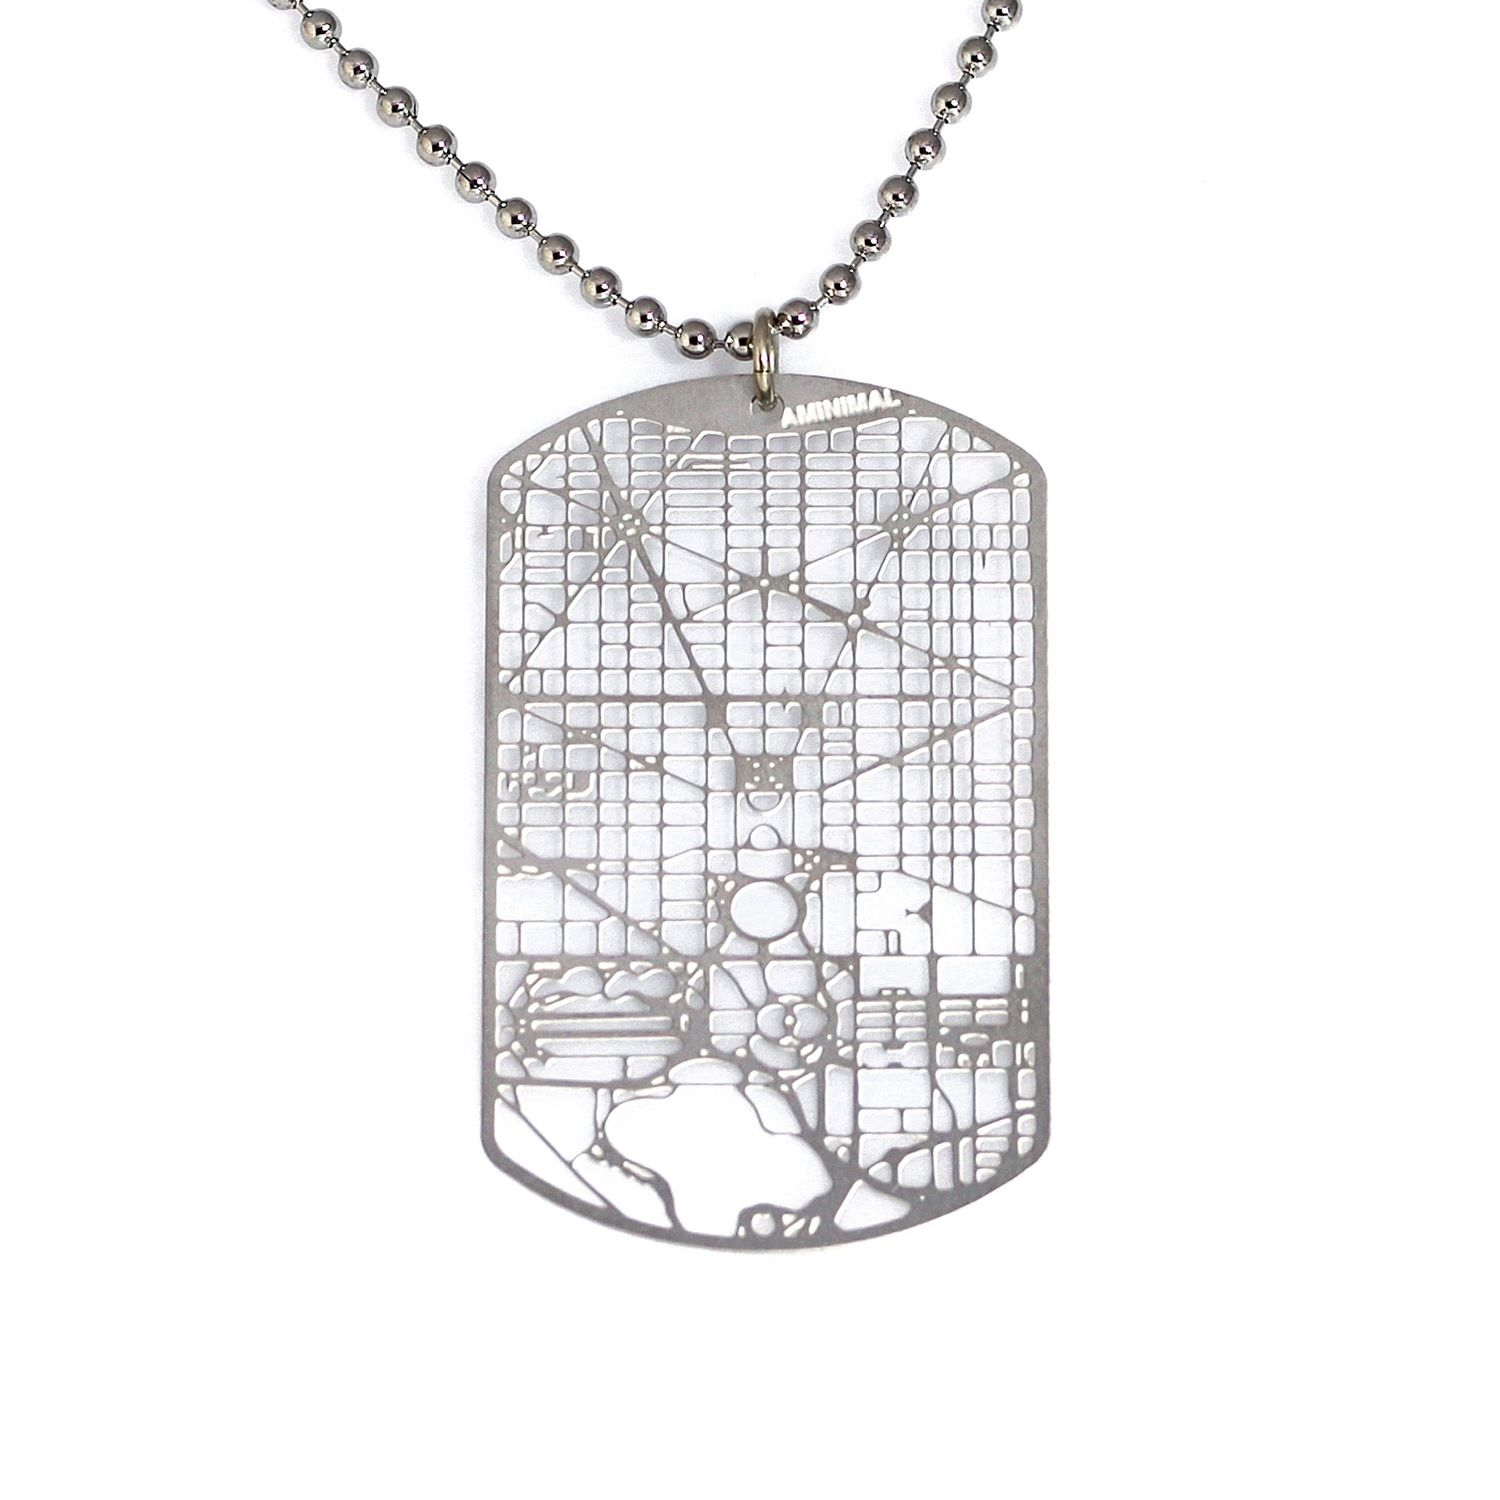 Aminimal Studio | Urban Gridded Dogtag Jewelry Collection